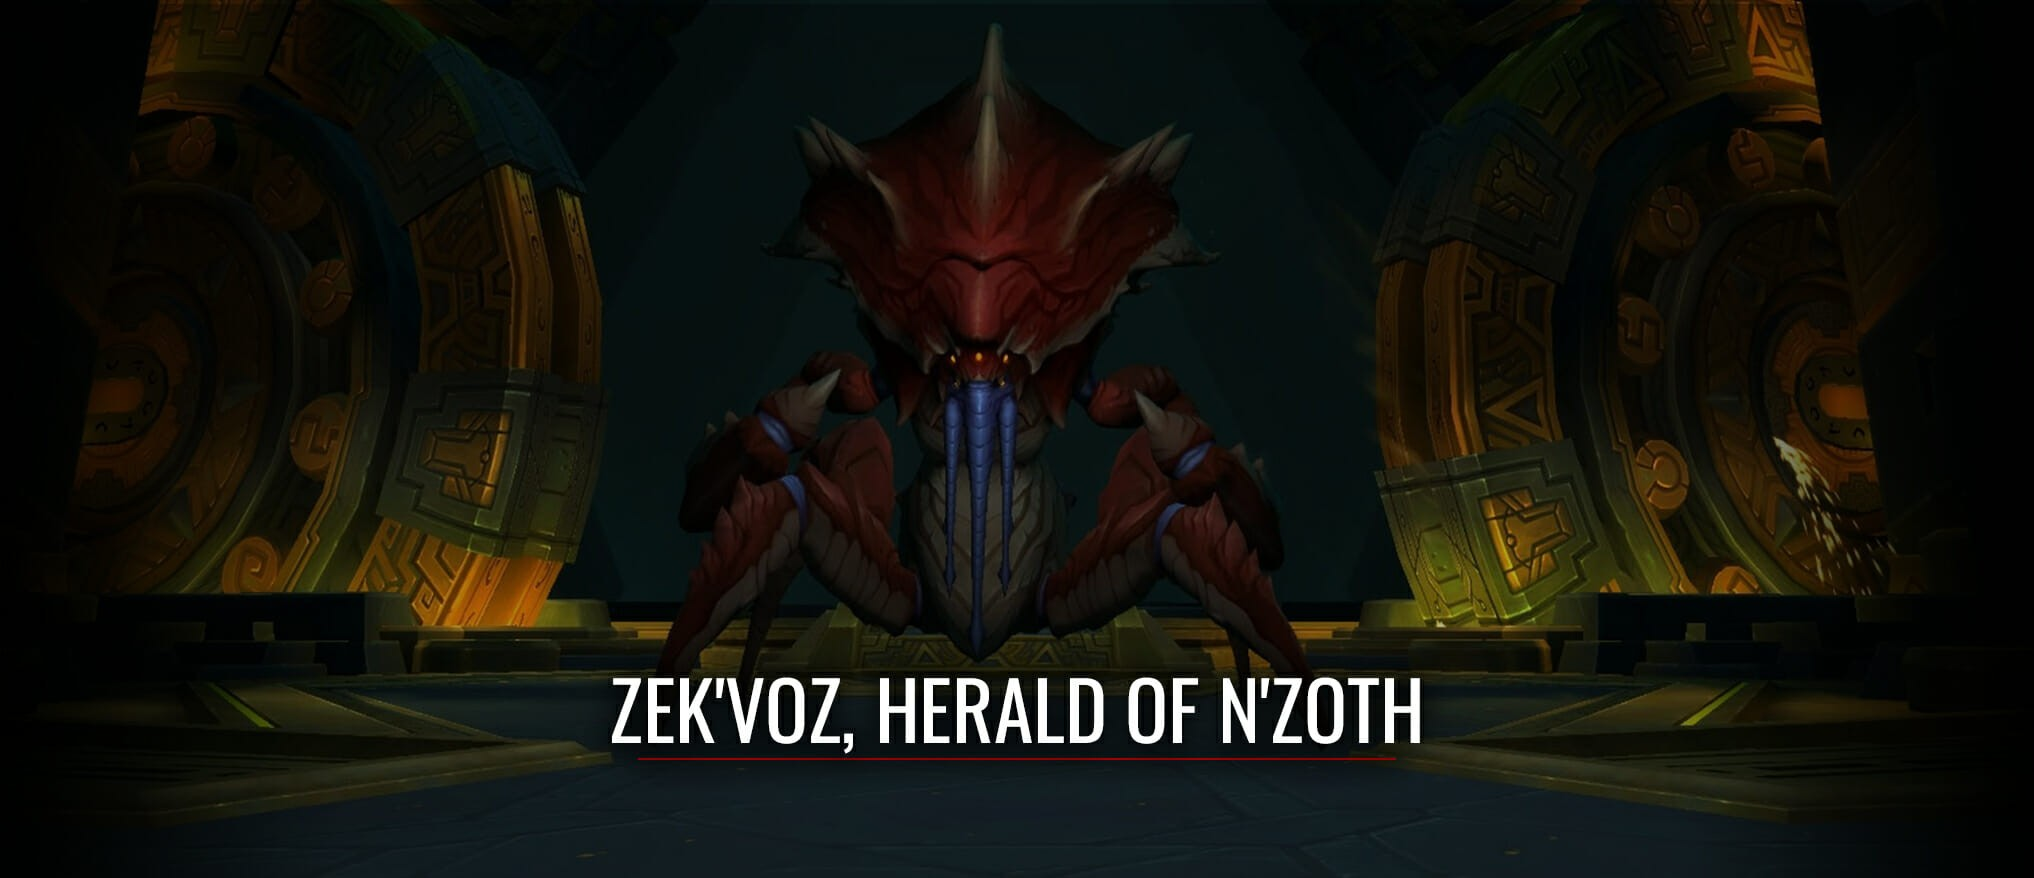 Zekvoz_Herald_of_Nzoth